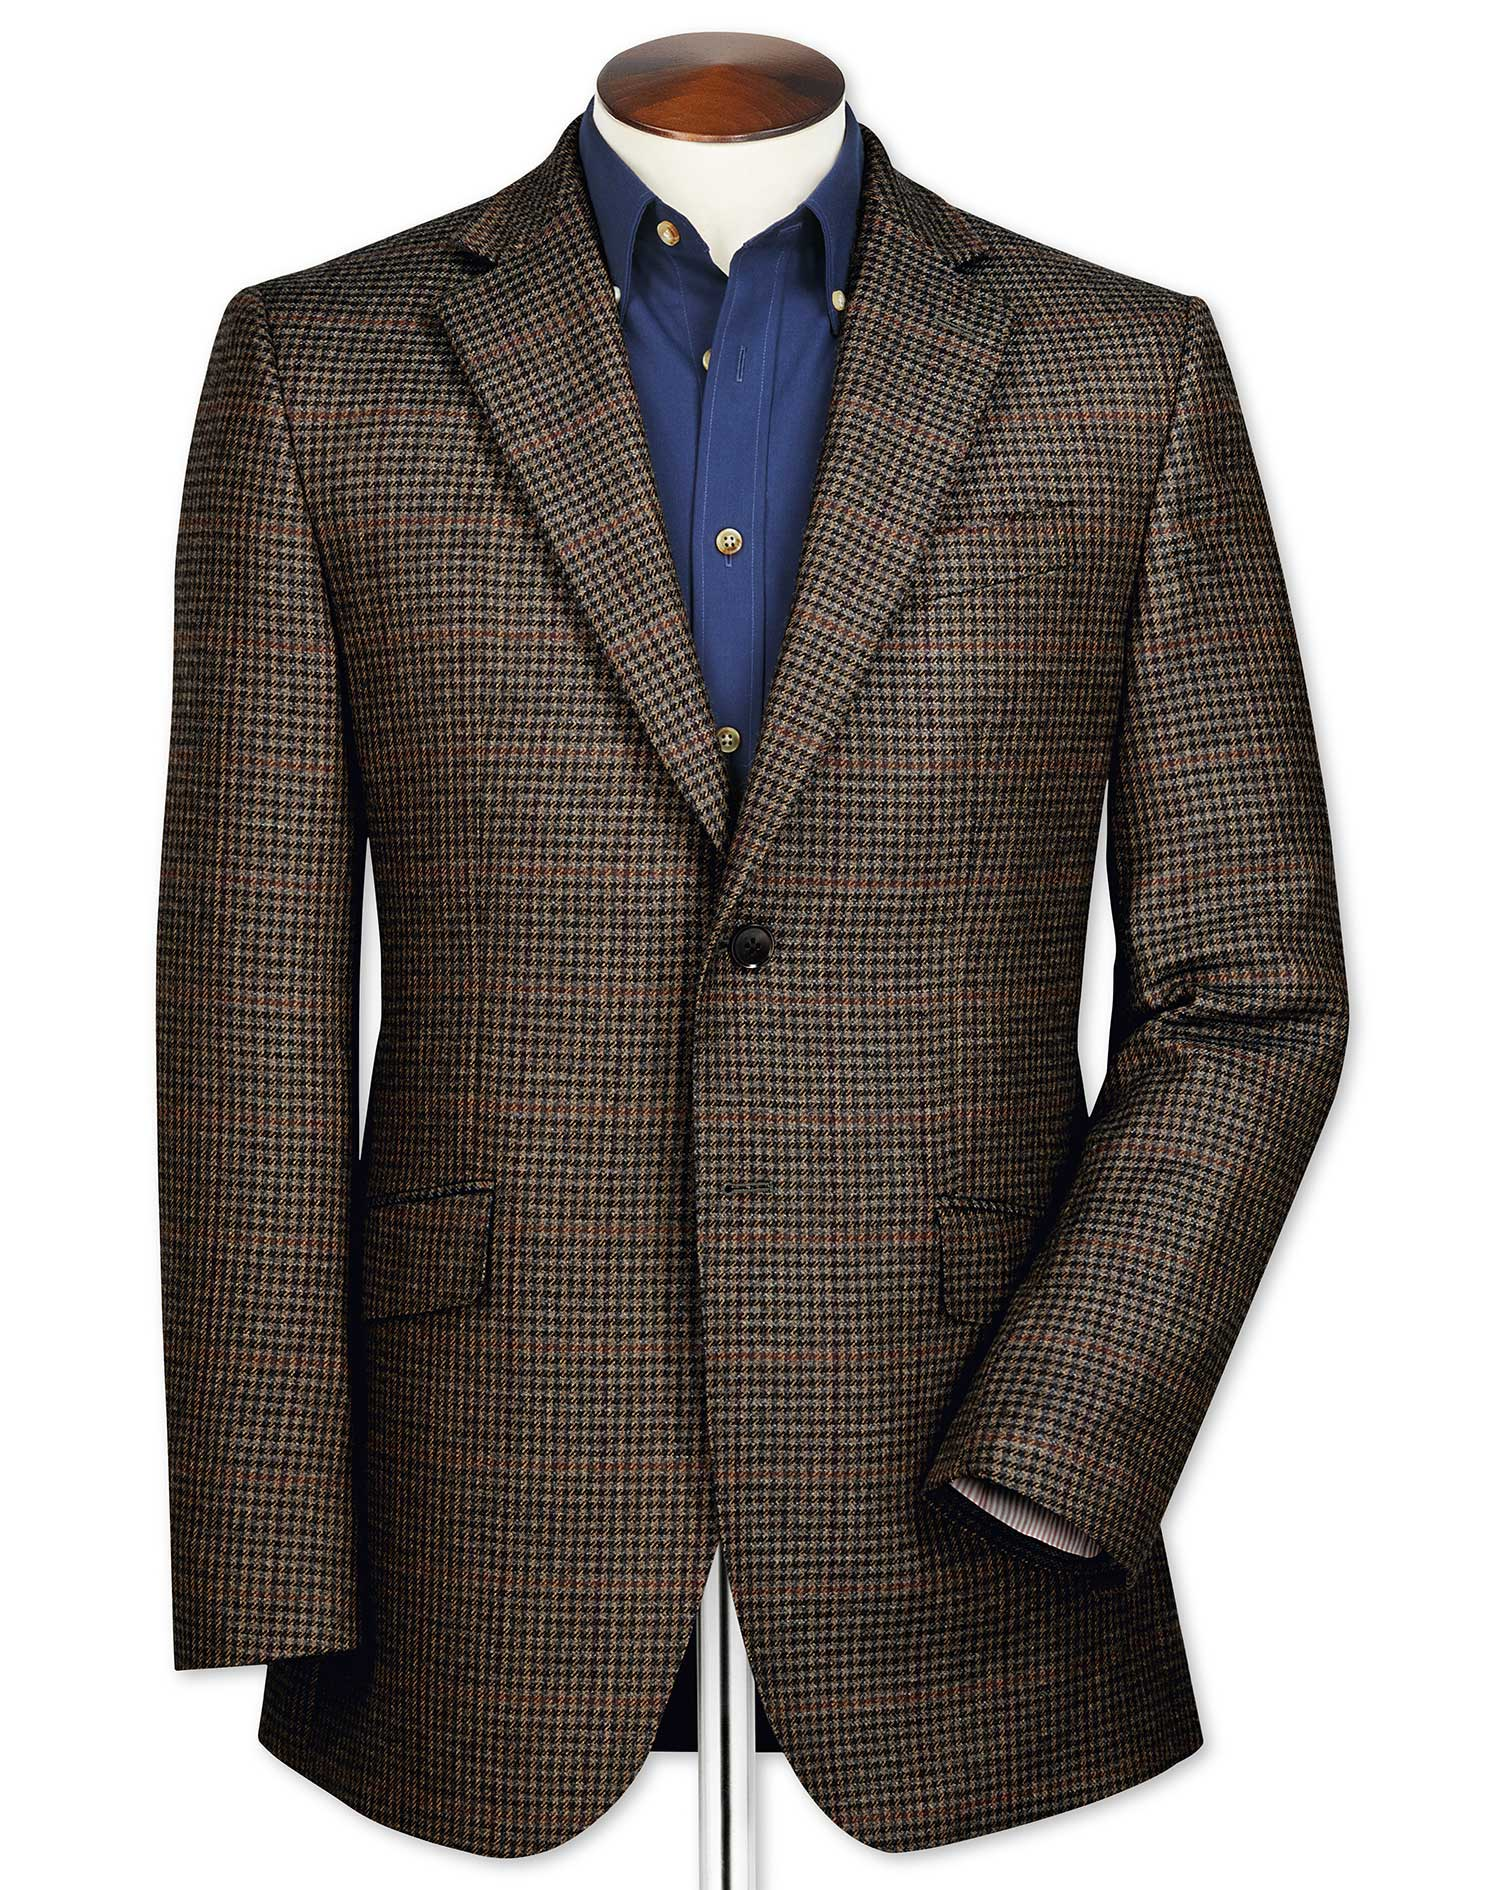 Classic Fit Brown Semi-Plain Lambswool Wool Jacket Size 42 Regular by Charles Tyrwhitt